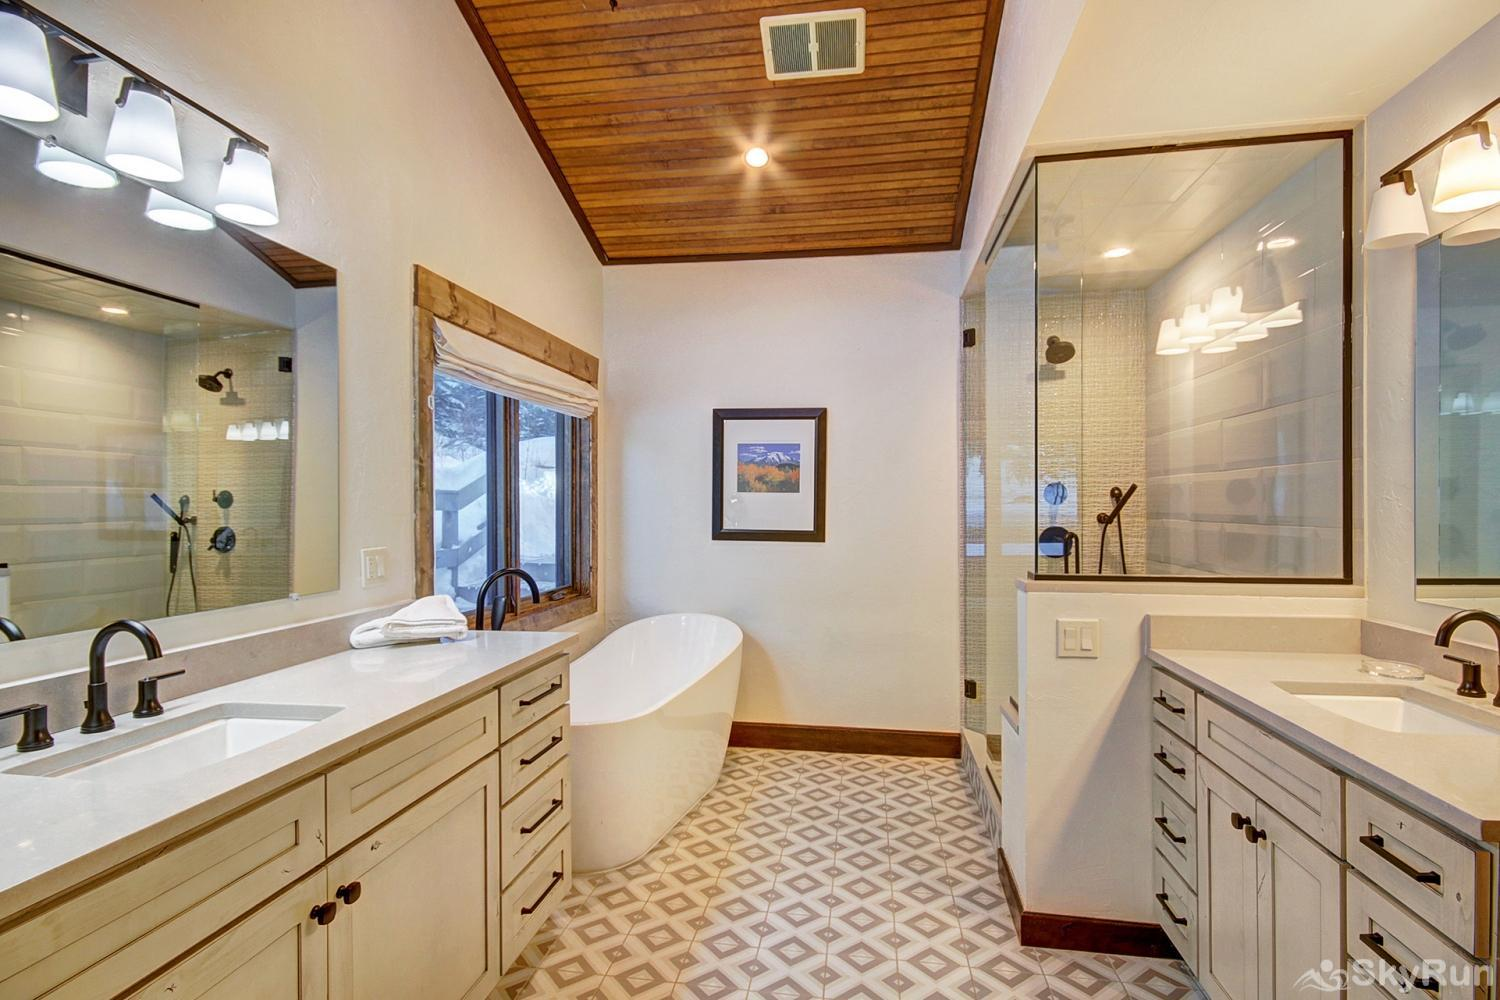 Creekside Chateau Mid-level master ensuite bath with soaking tub, walk-in tile shower